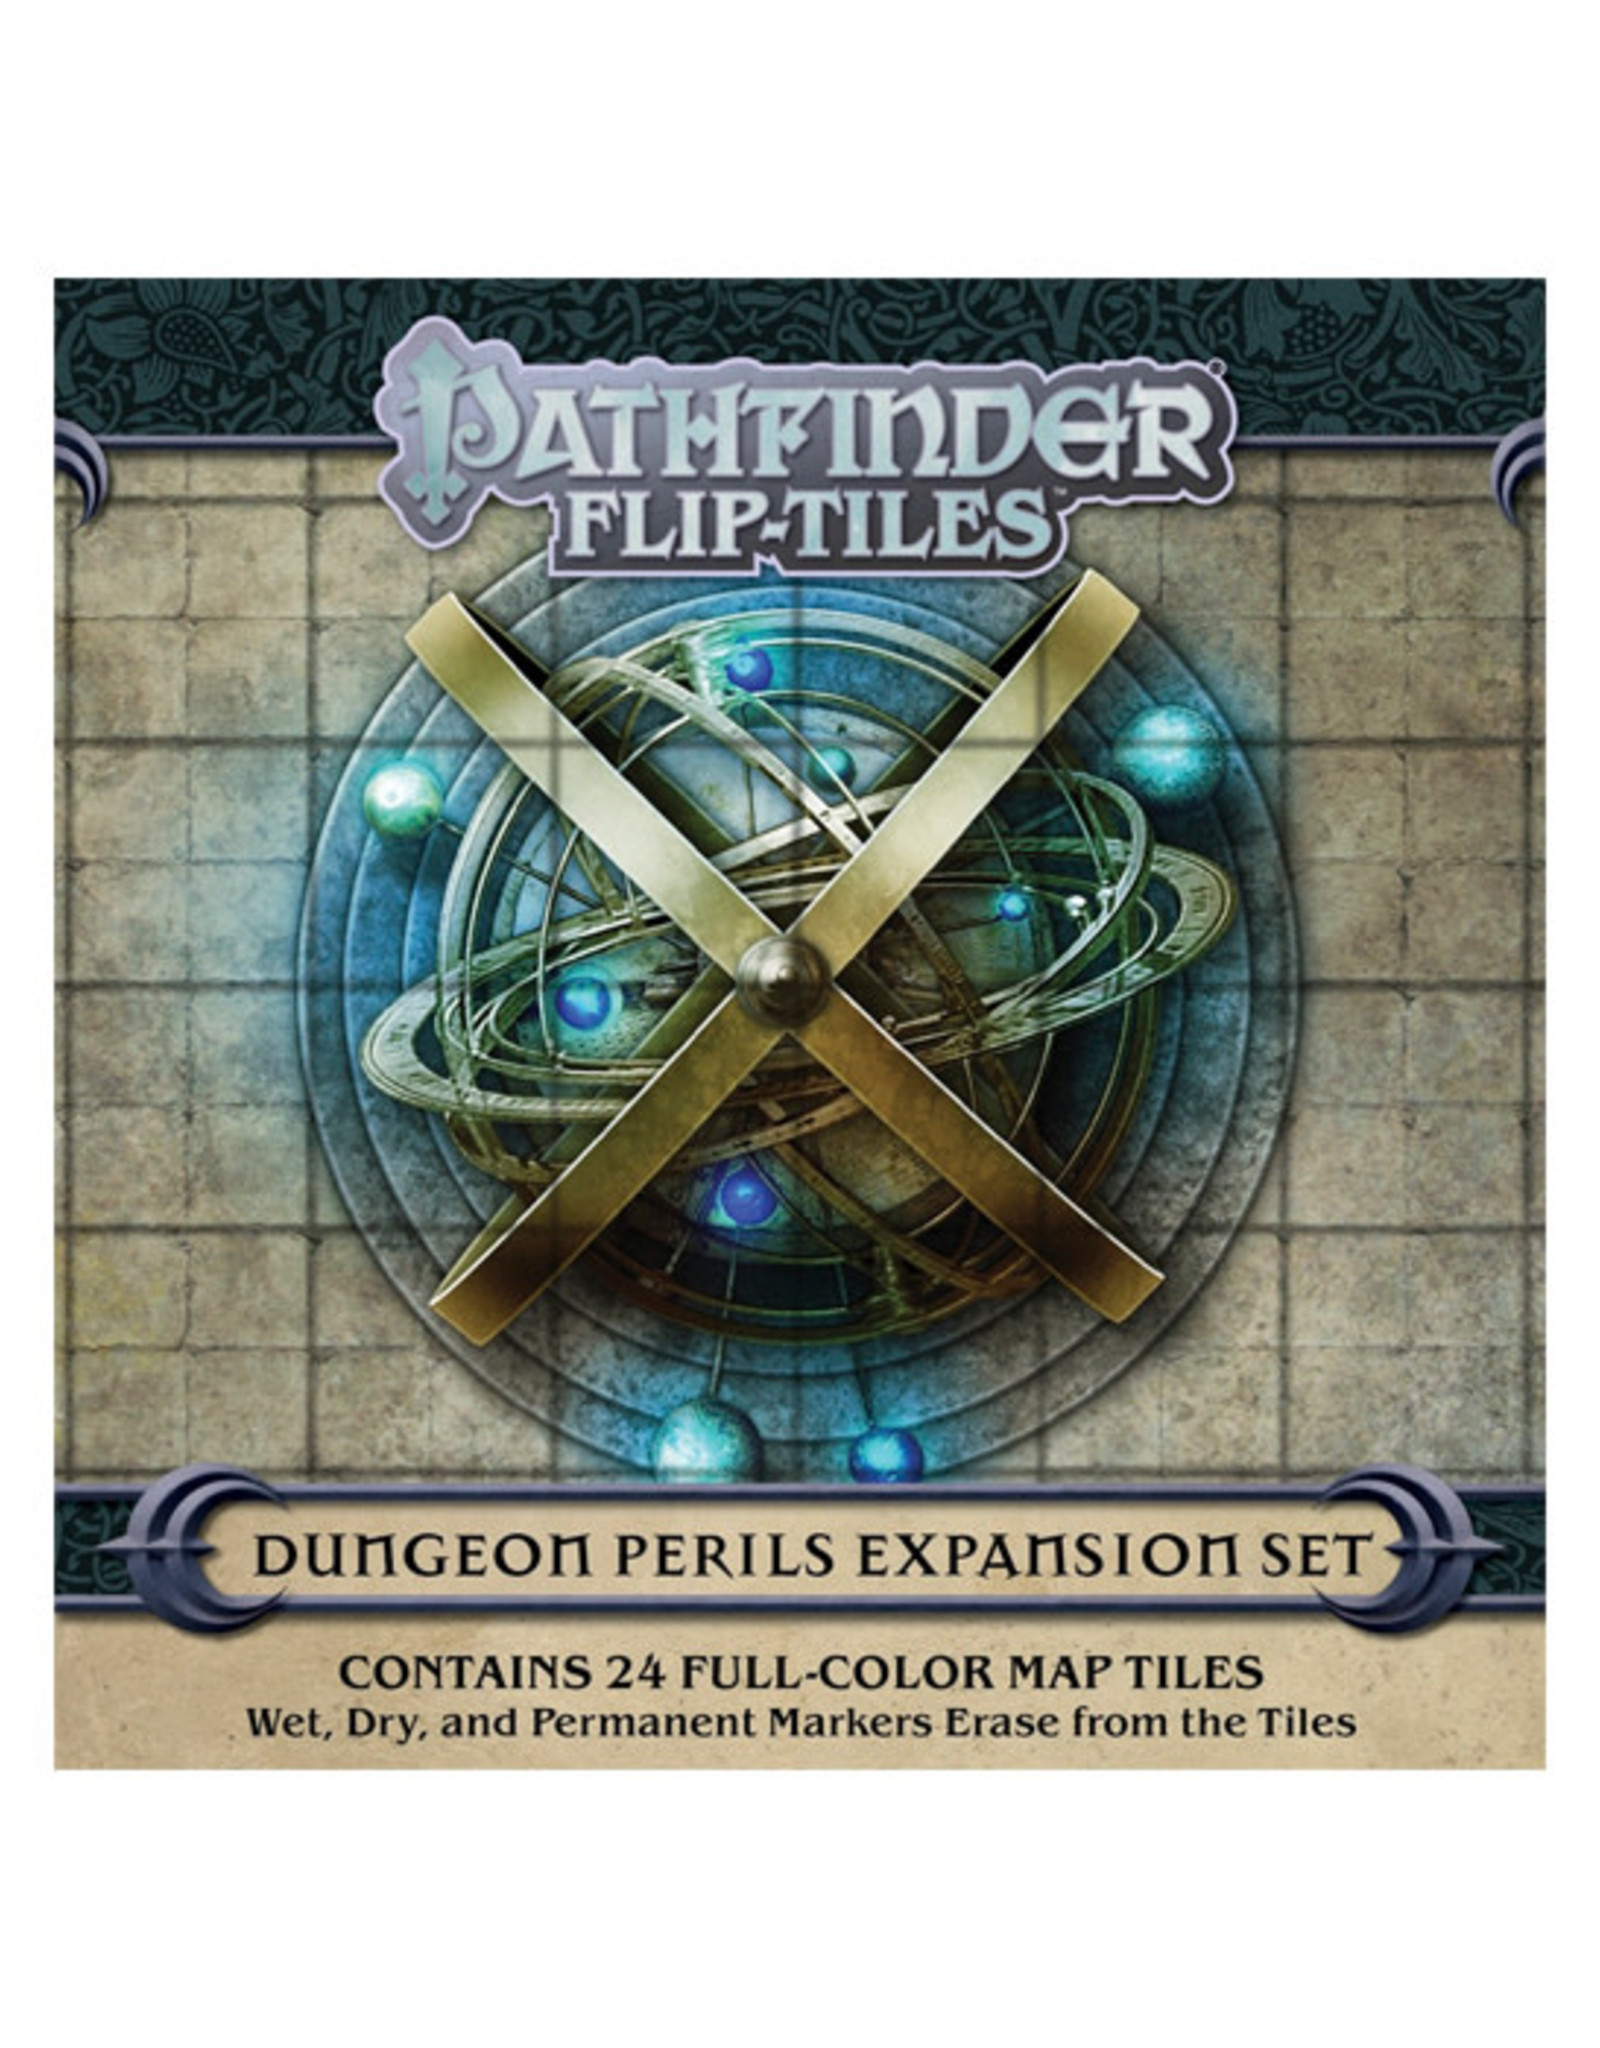 Pathfinder Pathfinder: Flip-Tiles - Dungeon Perils Expansion Set